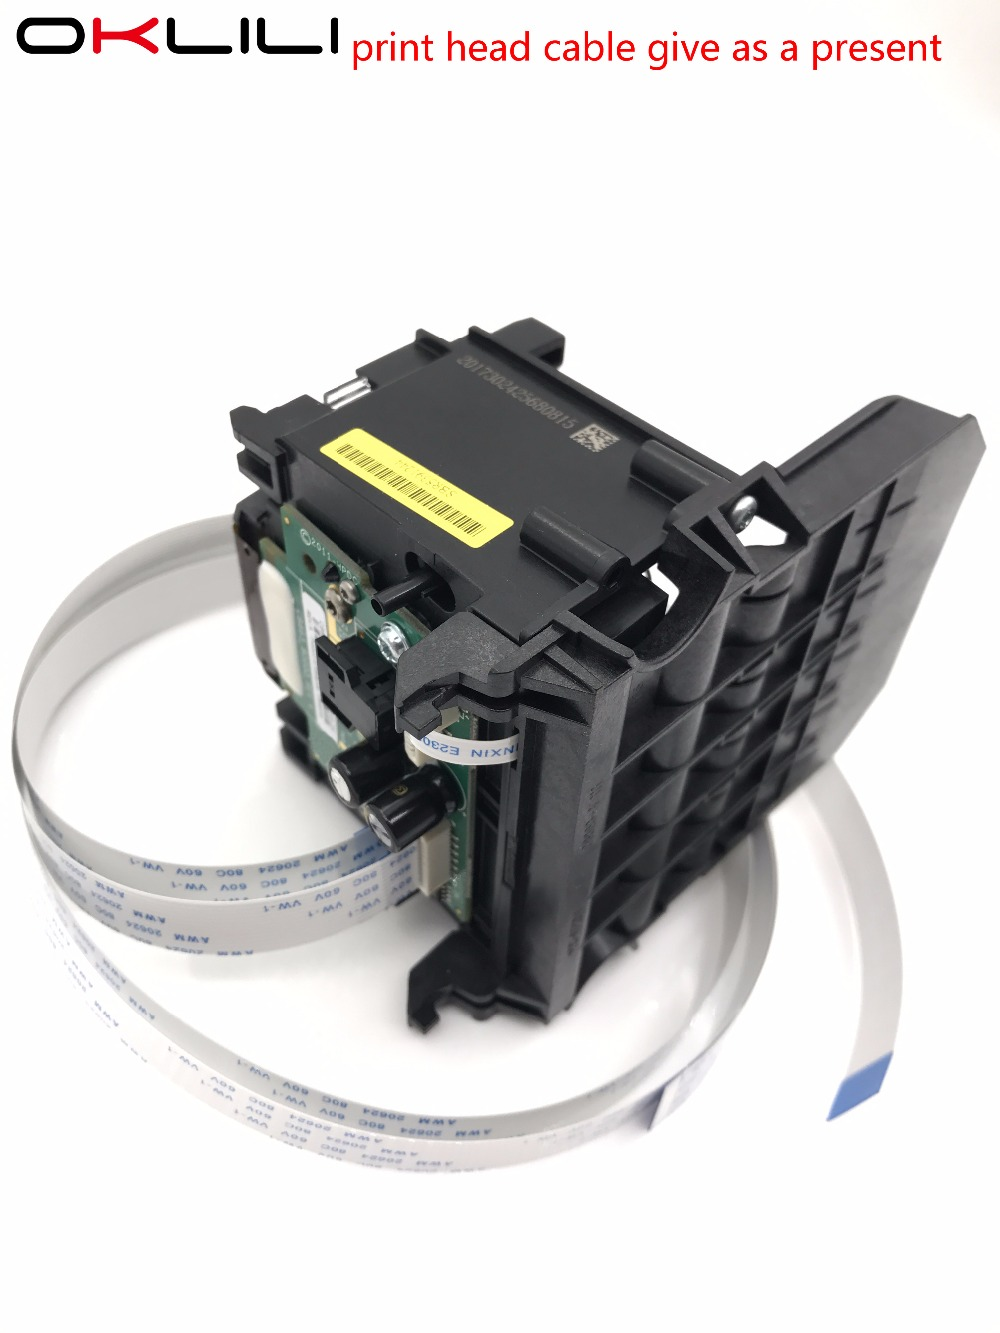 CB863-80013A CB863-80002A 932 933 932XL 933XL Printhead Printer Print head for HP 6060e 6100 6100e 6600 6700 7110 7600 7610 7612 4pcs black led front fender flares turn signal light car led side marker lamp for jeep wrangler jk 2007 2015 amber accessories